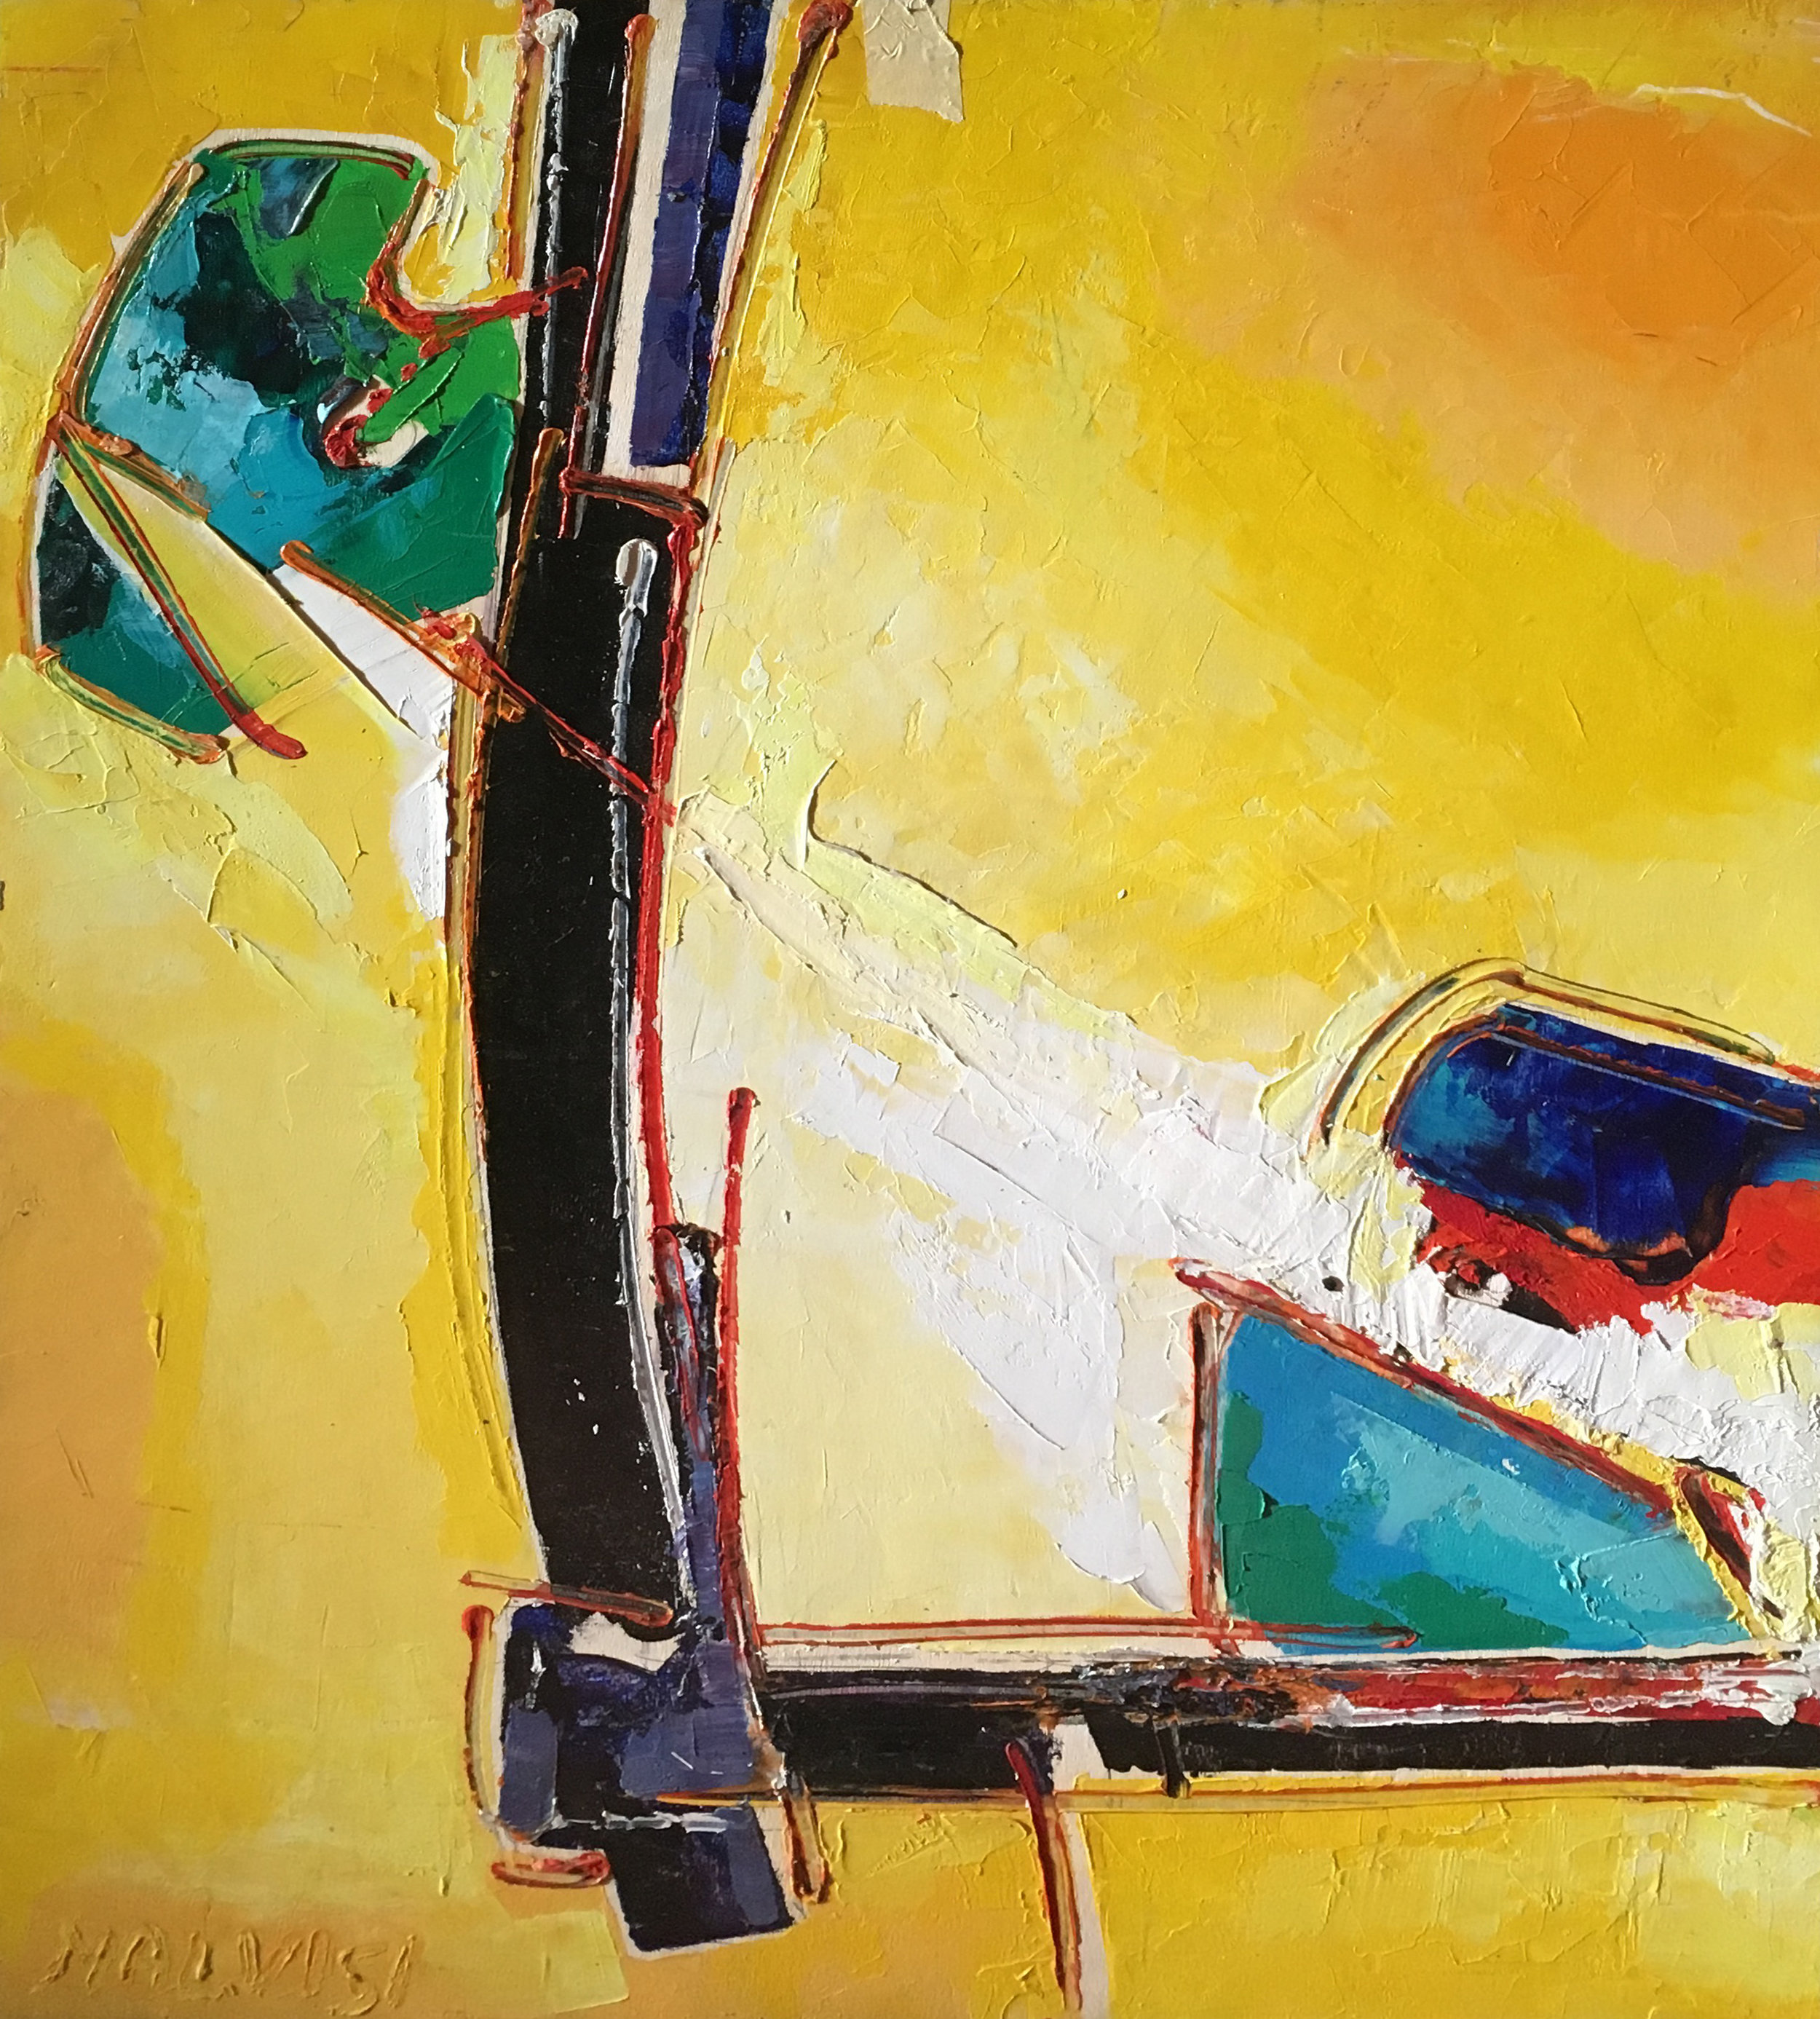 <b>Dominated by the beauty and by the immortable</b><br> (Orig.Dominati dal bello e dall'immutabile) <br> 1999 Oil on wood <br> cm 60 x 80